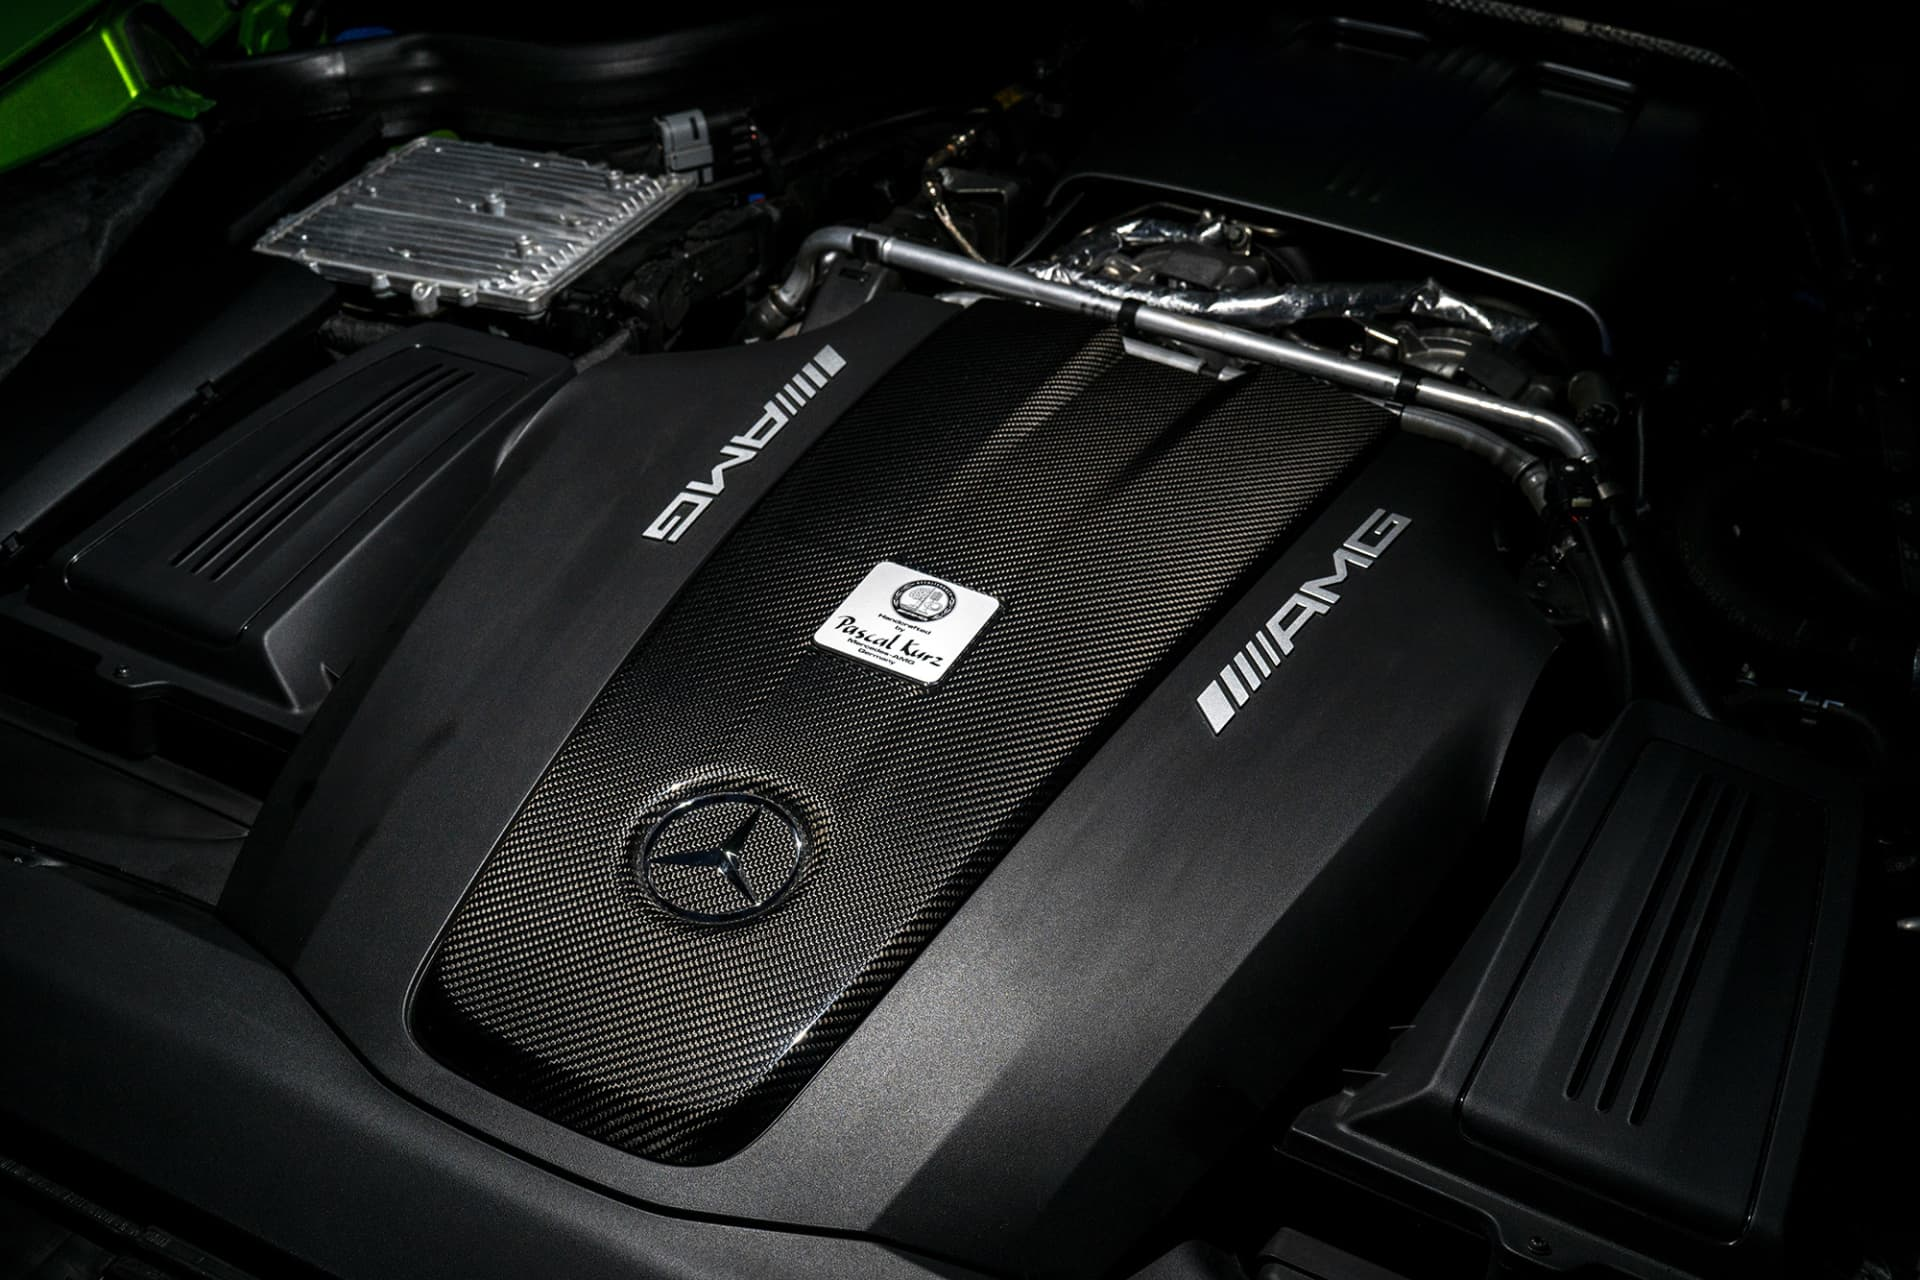 The AMG GT R engine is a V8 with 585 horse power.